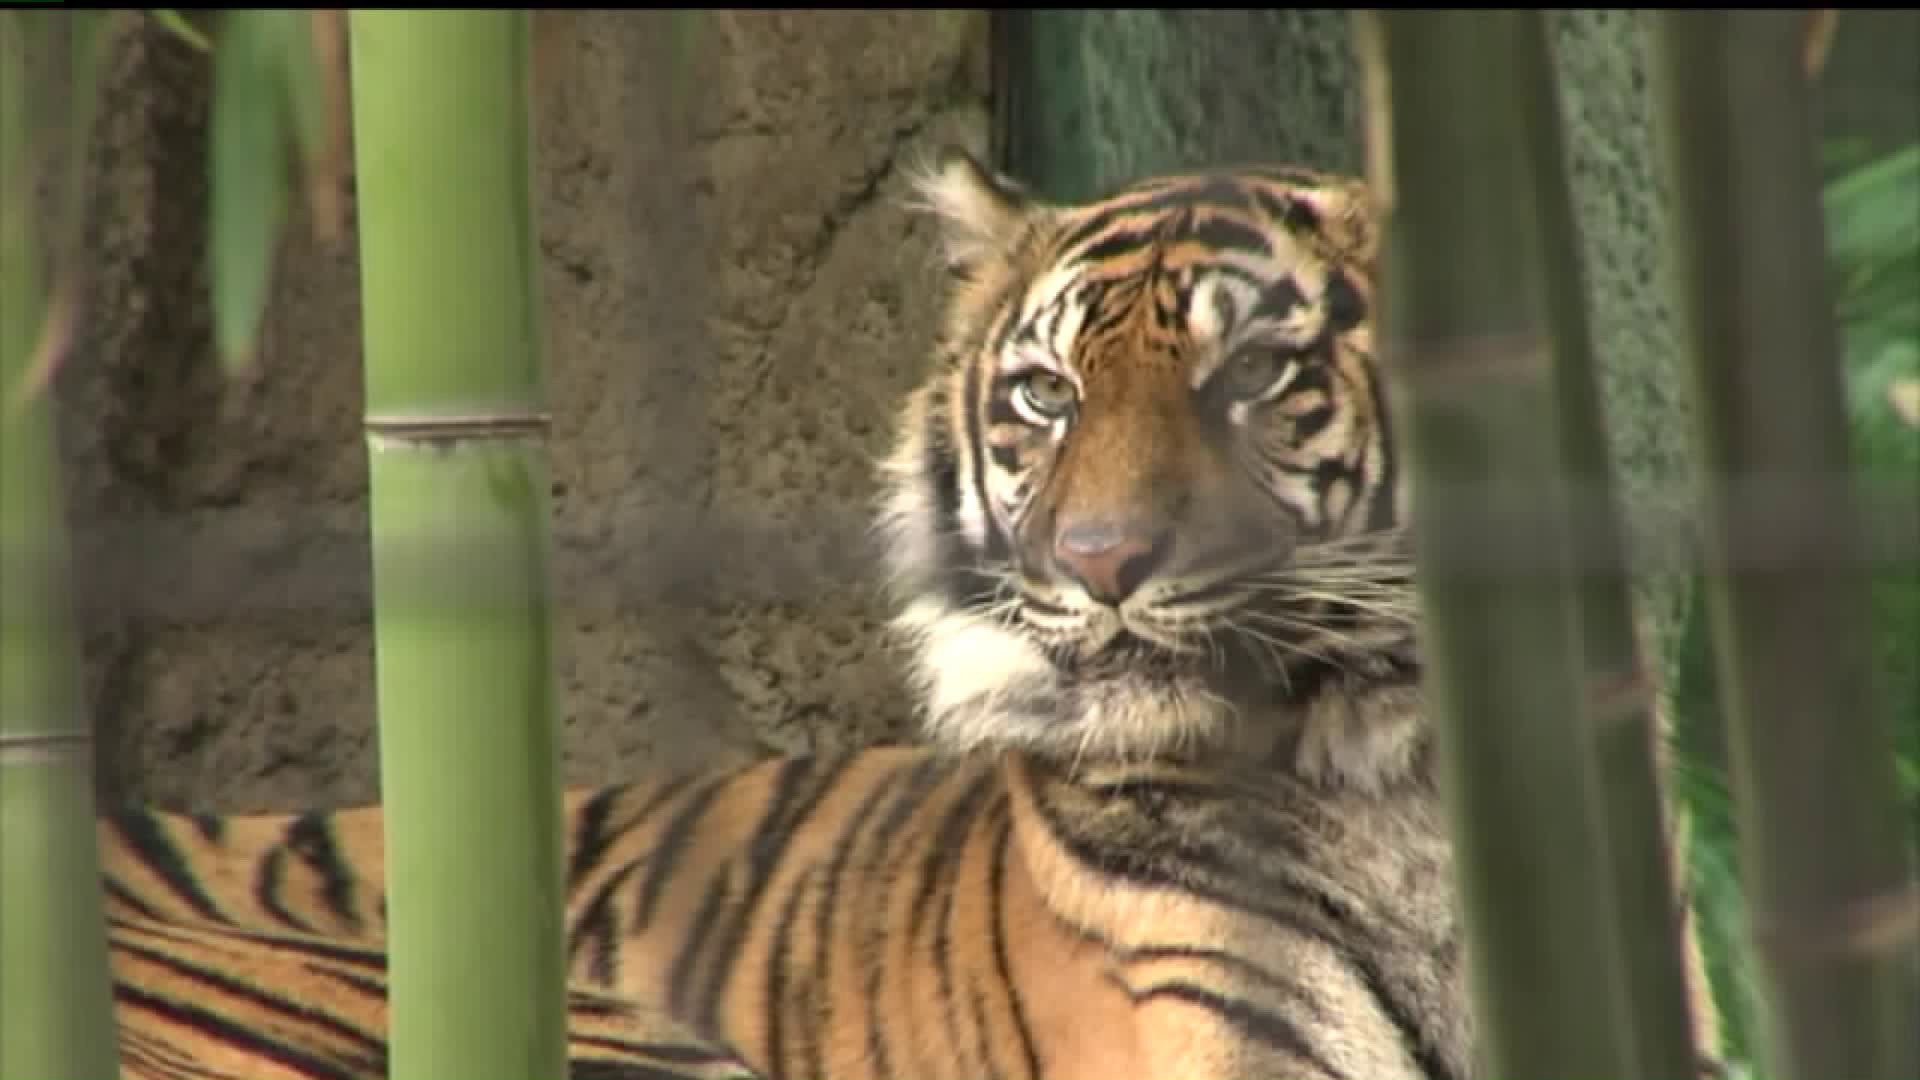 Activists 'Not Surprised' by Tiger's Death at Sacramento Zoo